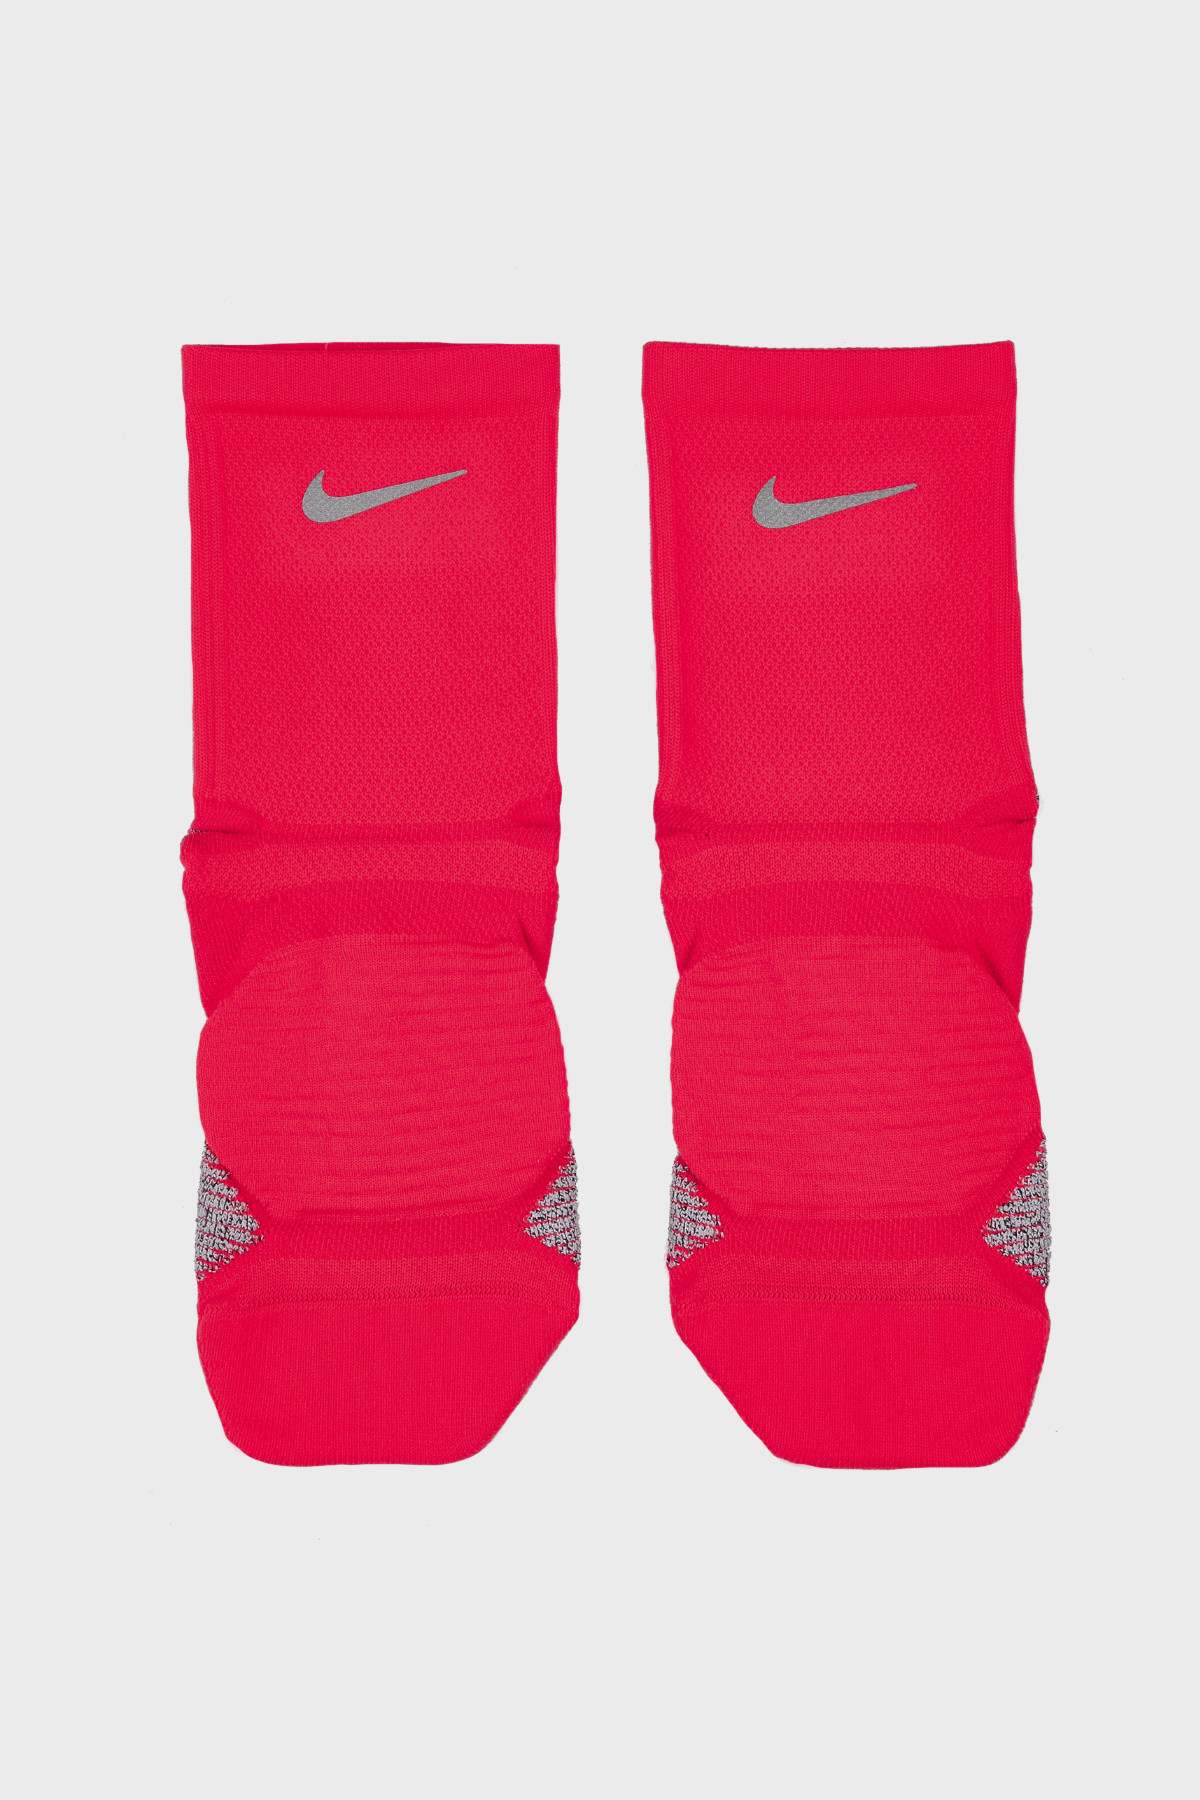 NIKE - RACING ANKLE SOCKS - CRIMSON